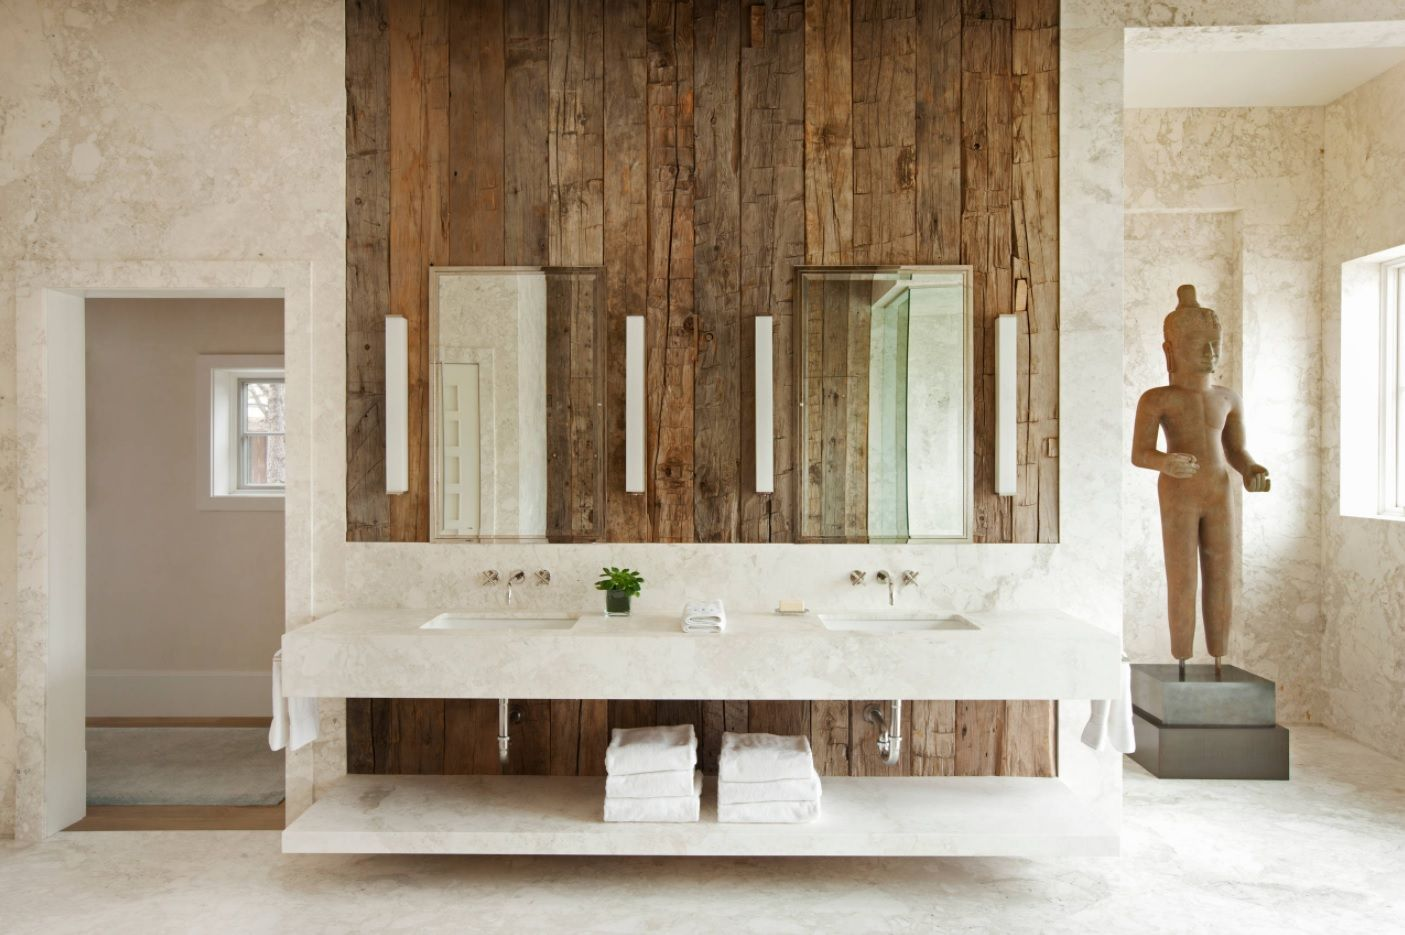 Master Bathroom Design Ideas with Real Interior Photos. Wooden accent wall